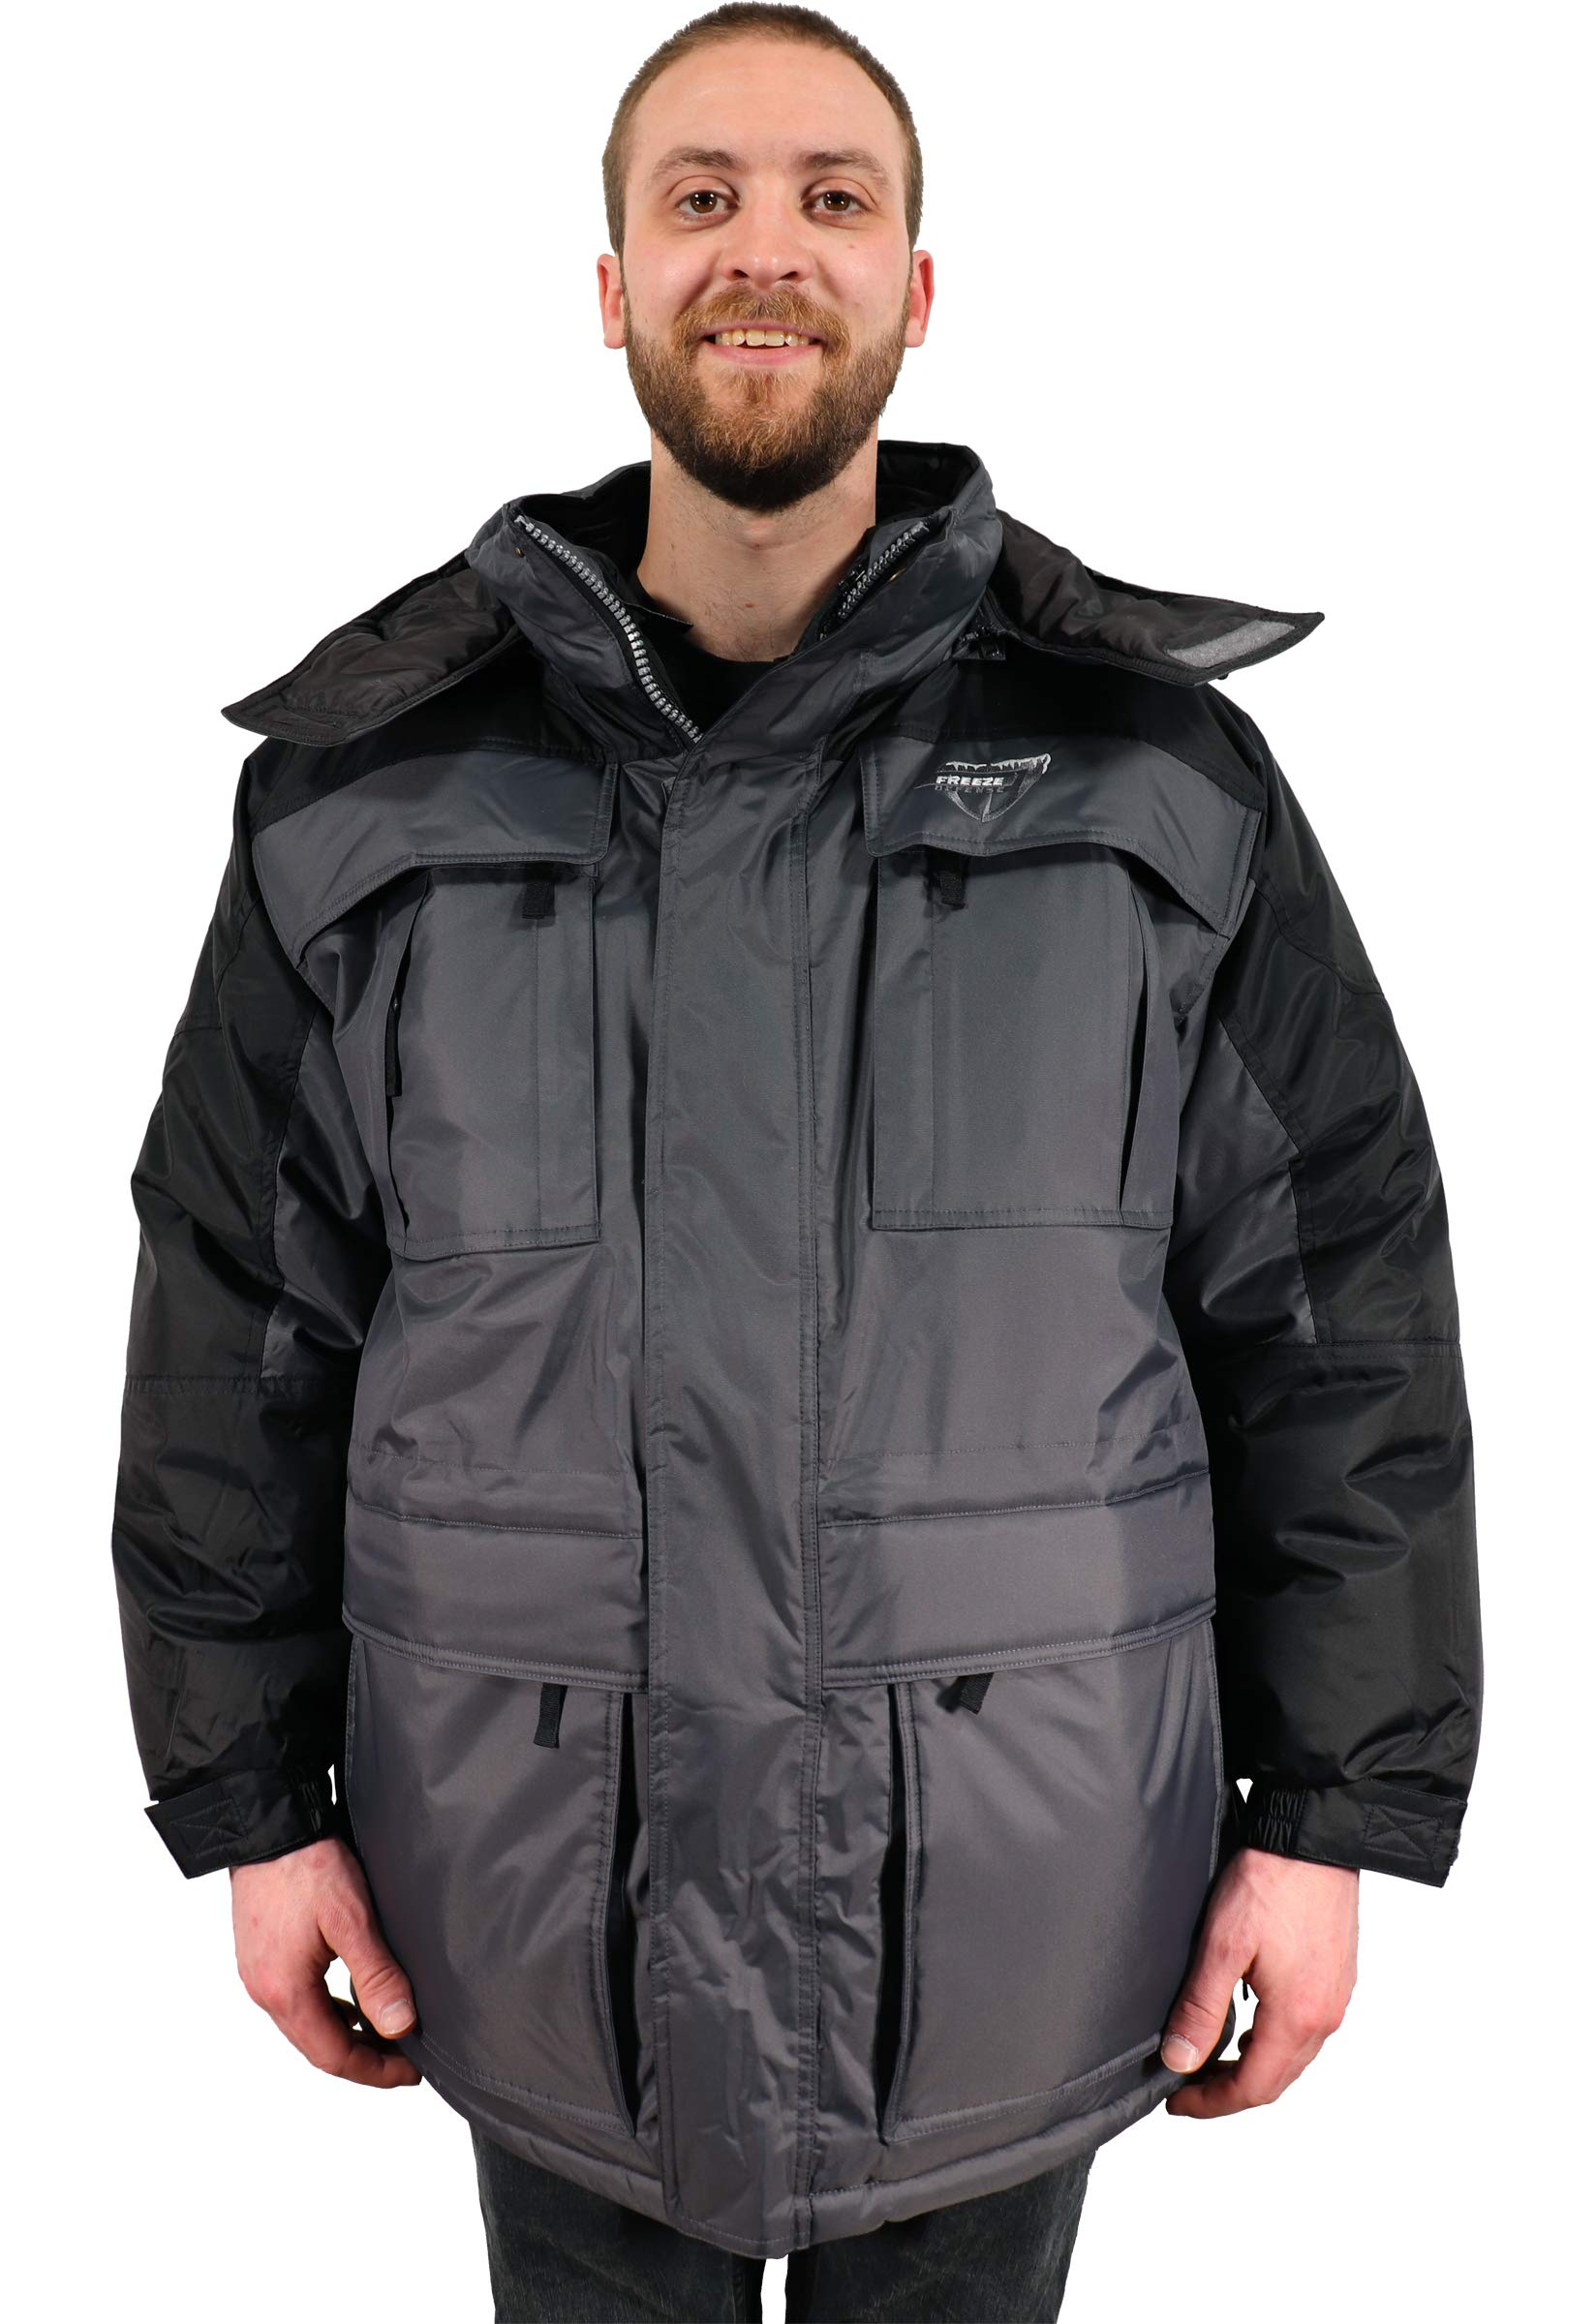 Freeze Defense Mens Big and Tall 3in1 Winter Jacket Coat & Vest (3XL / 3X Gray) by Freeze